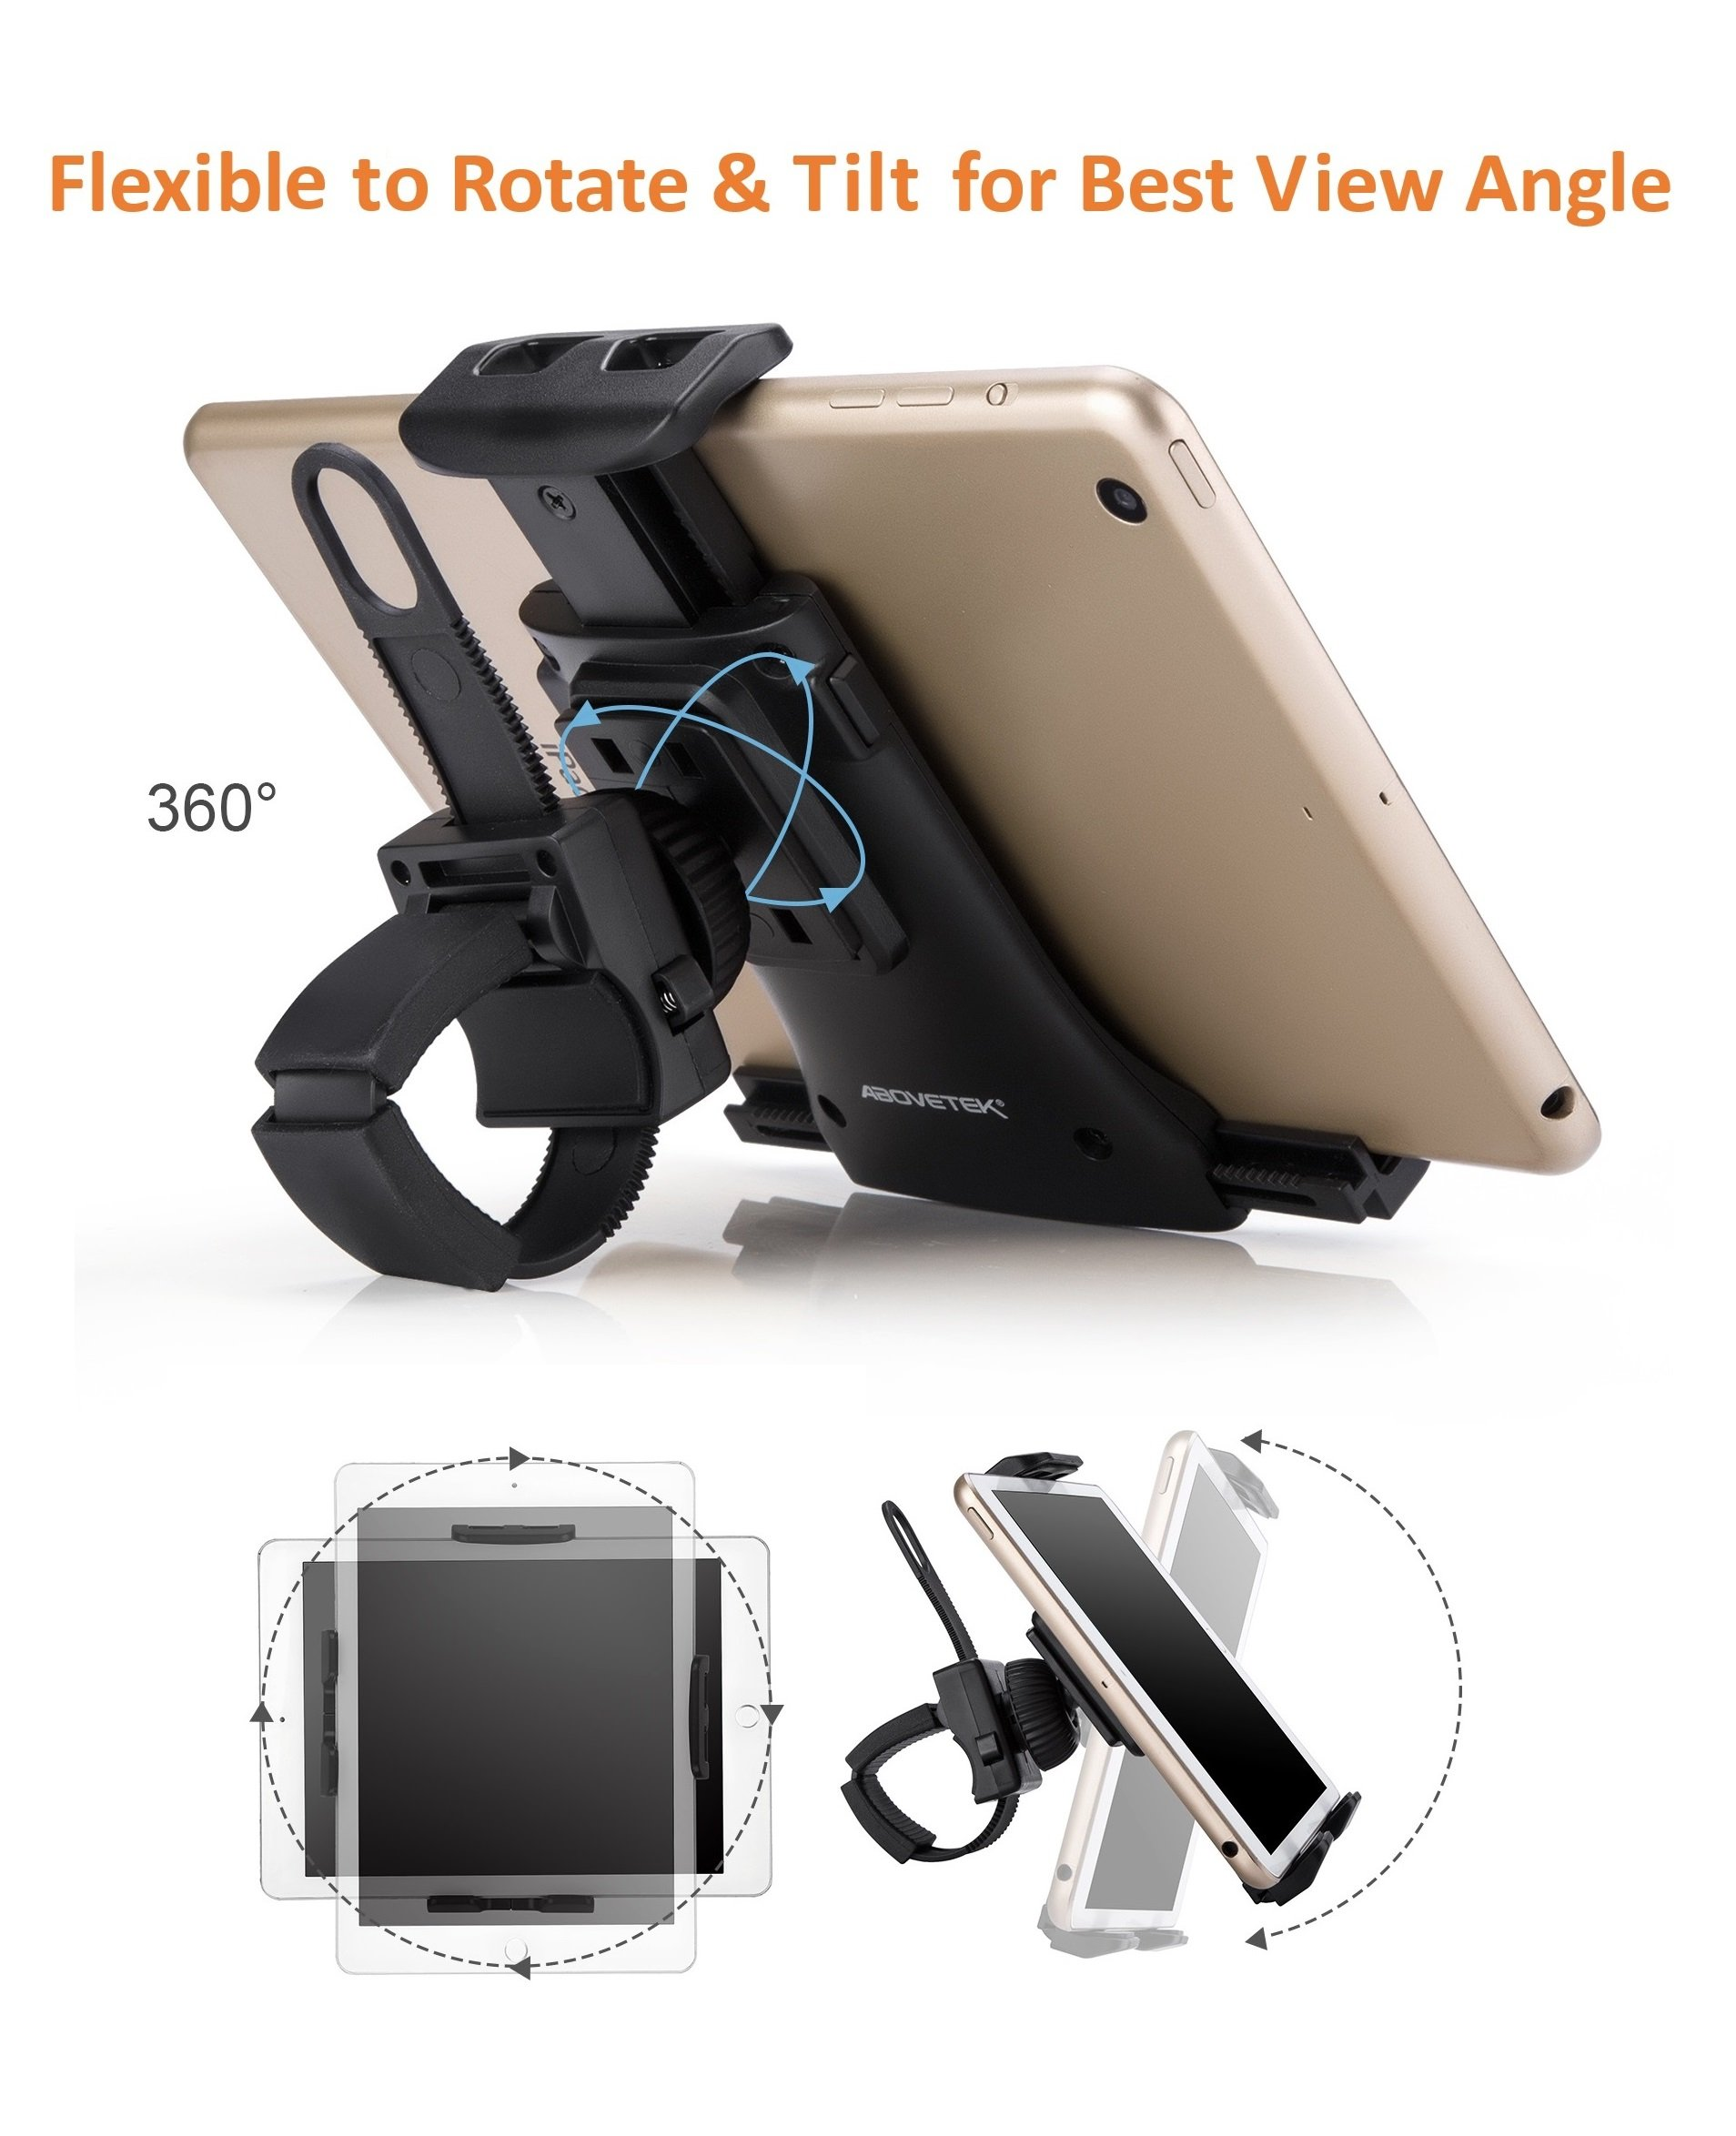 AboveTEK All-In-One Cycling Bike iPad/iPhone Mount, Portable Compact Tablet Holder for Indoor Gym Handlebar on Exercise Bikes & Treadmills, Adjustable 360° Swivel Stand For 3.5-12'' Tablets/Cell Phones by AboveTEK (Image #3)